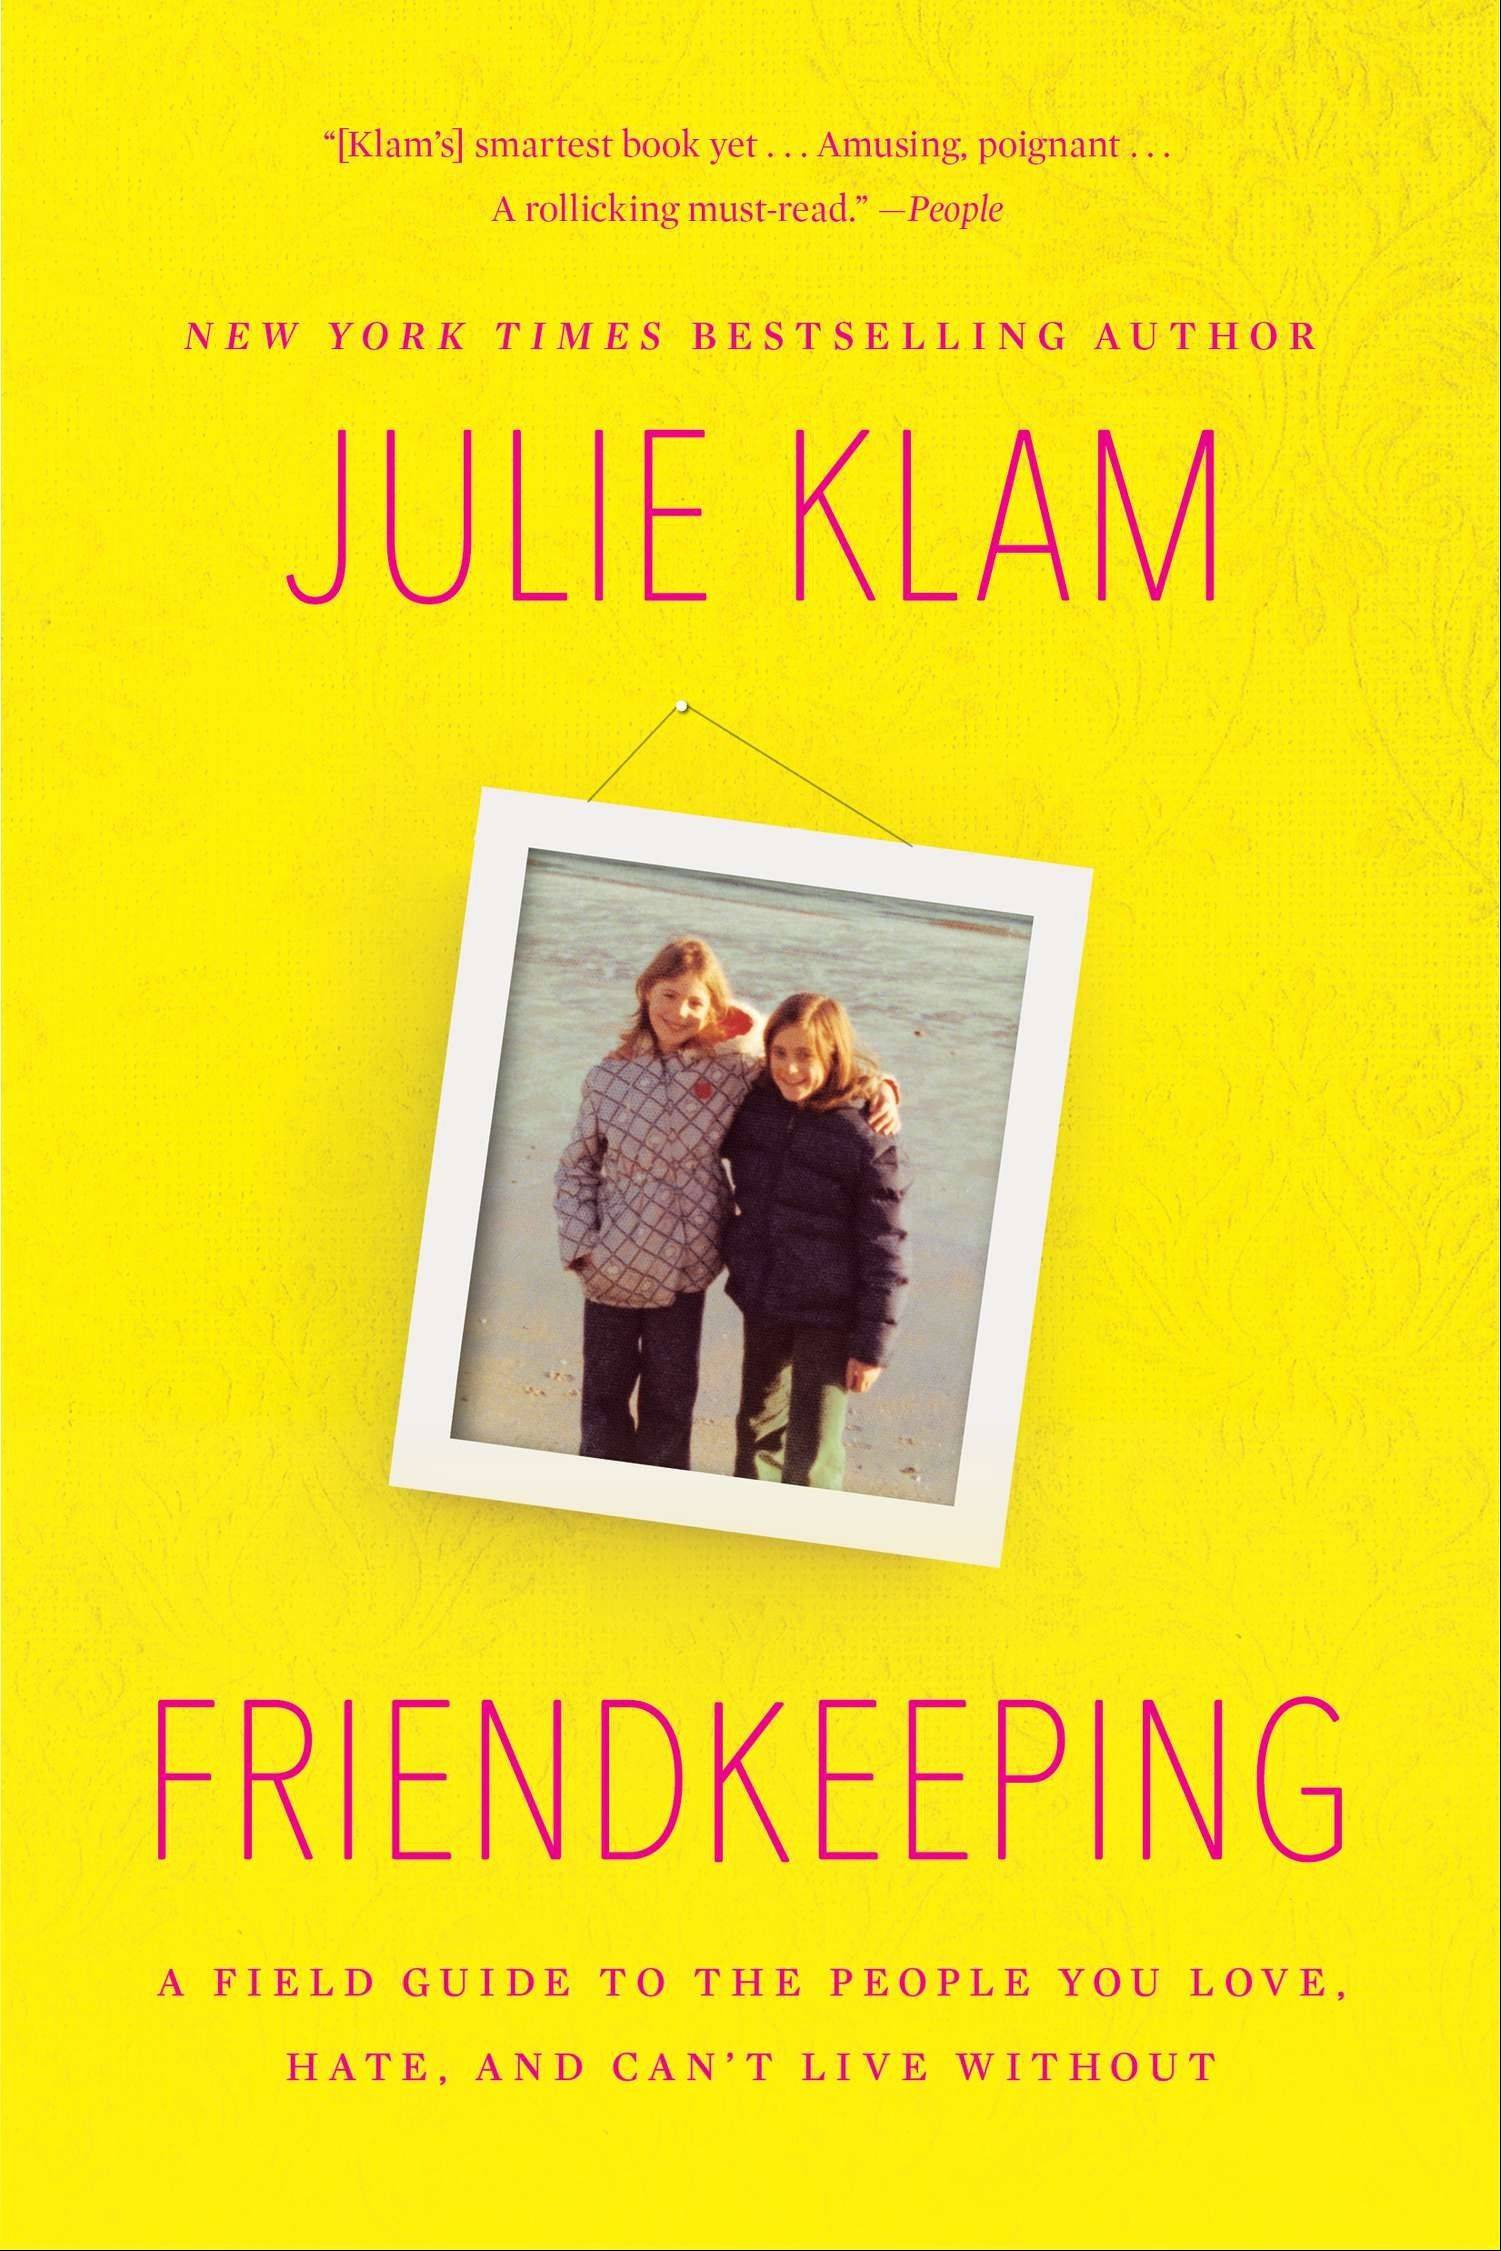 """Friendkeeping: A Field Guide to the People You Love, Hate, and Can't Live Without,"" by Julie Klam, believes middle ground is possible."